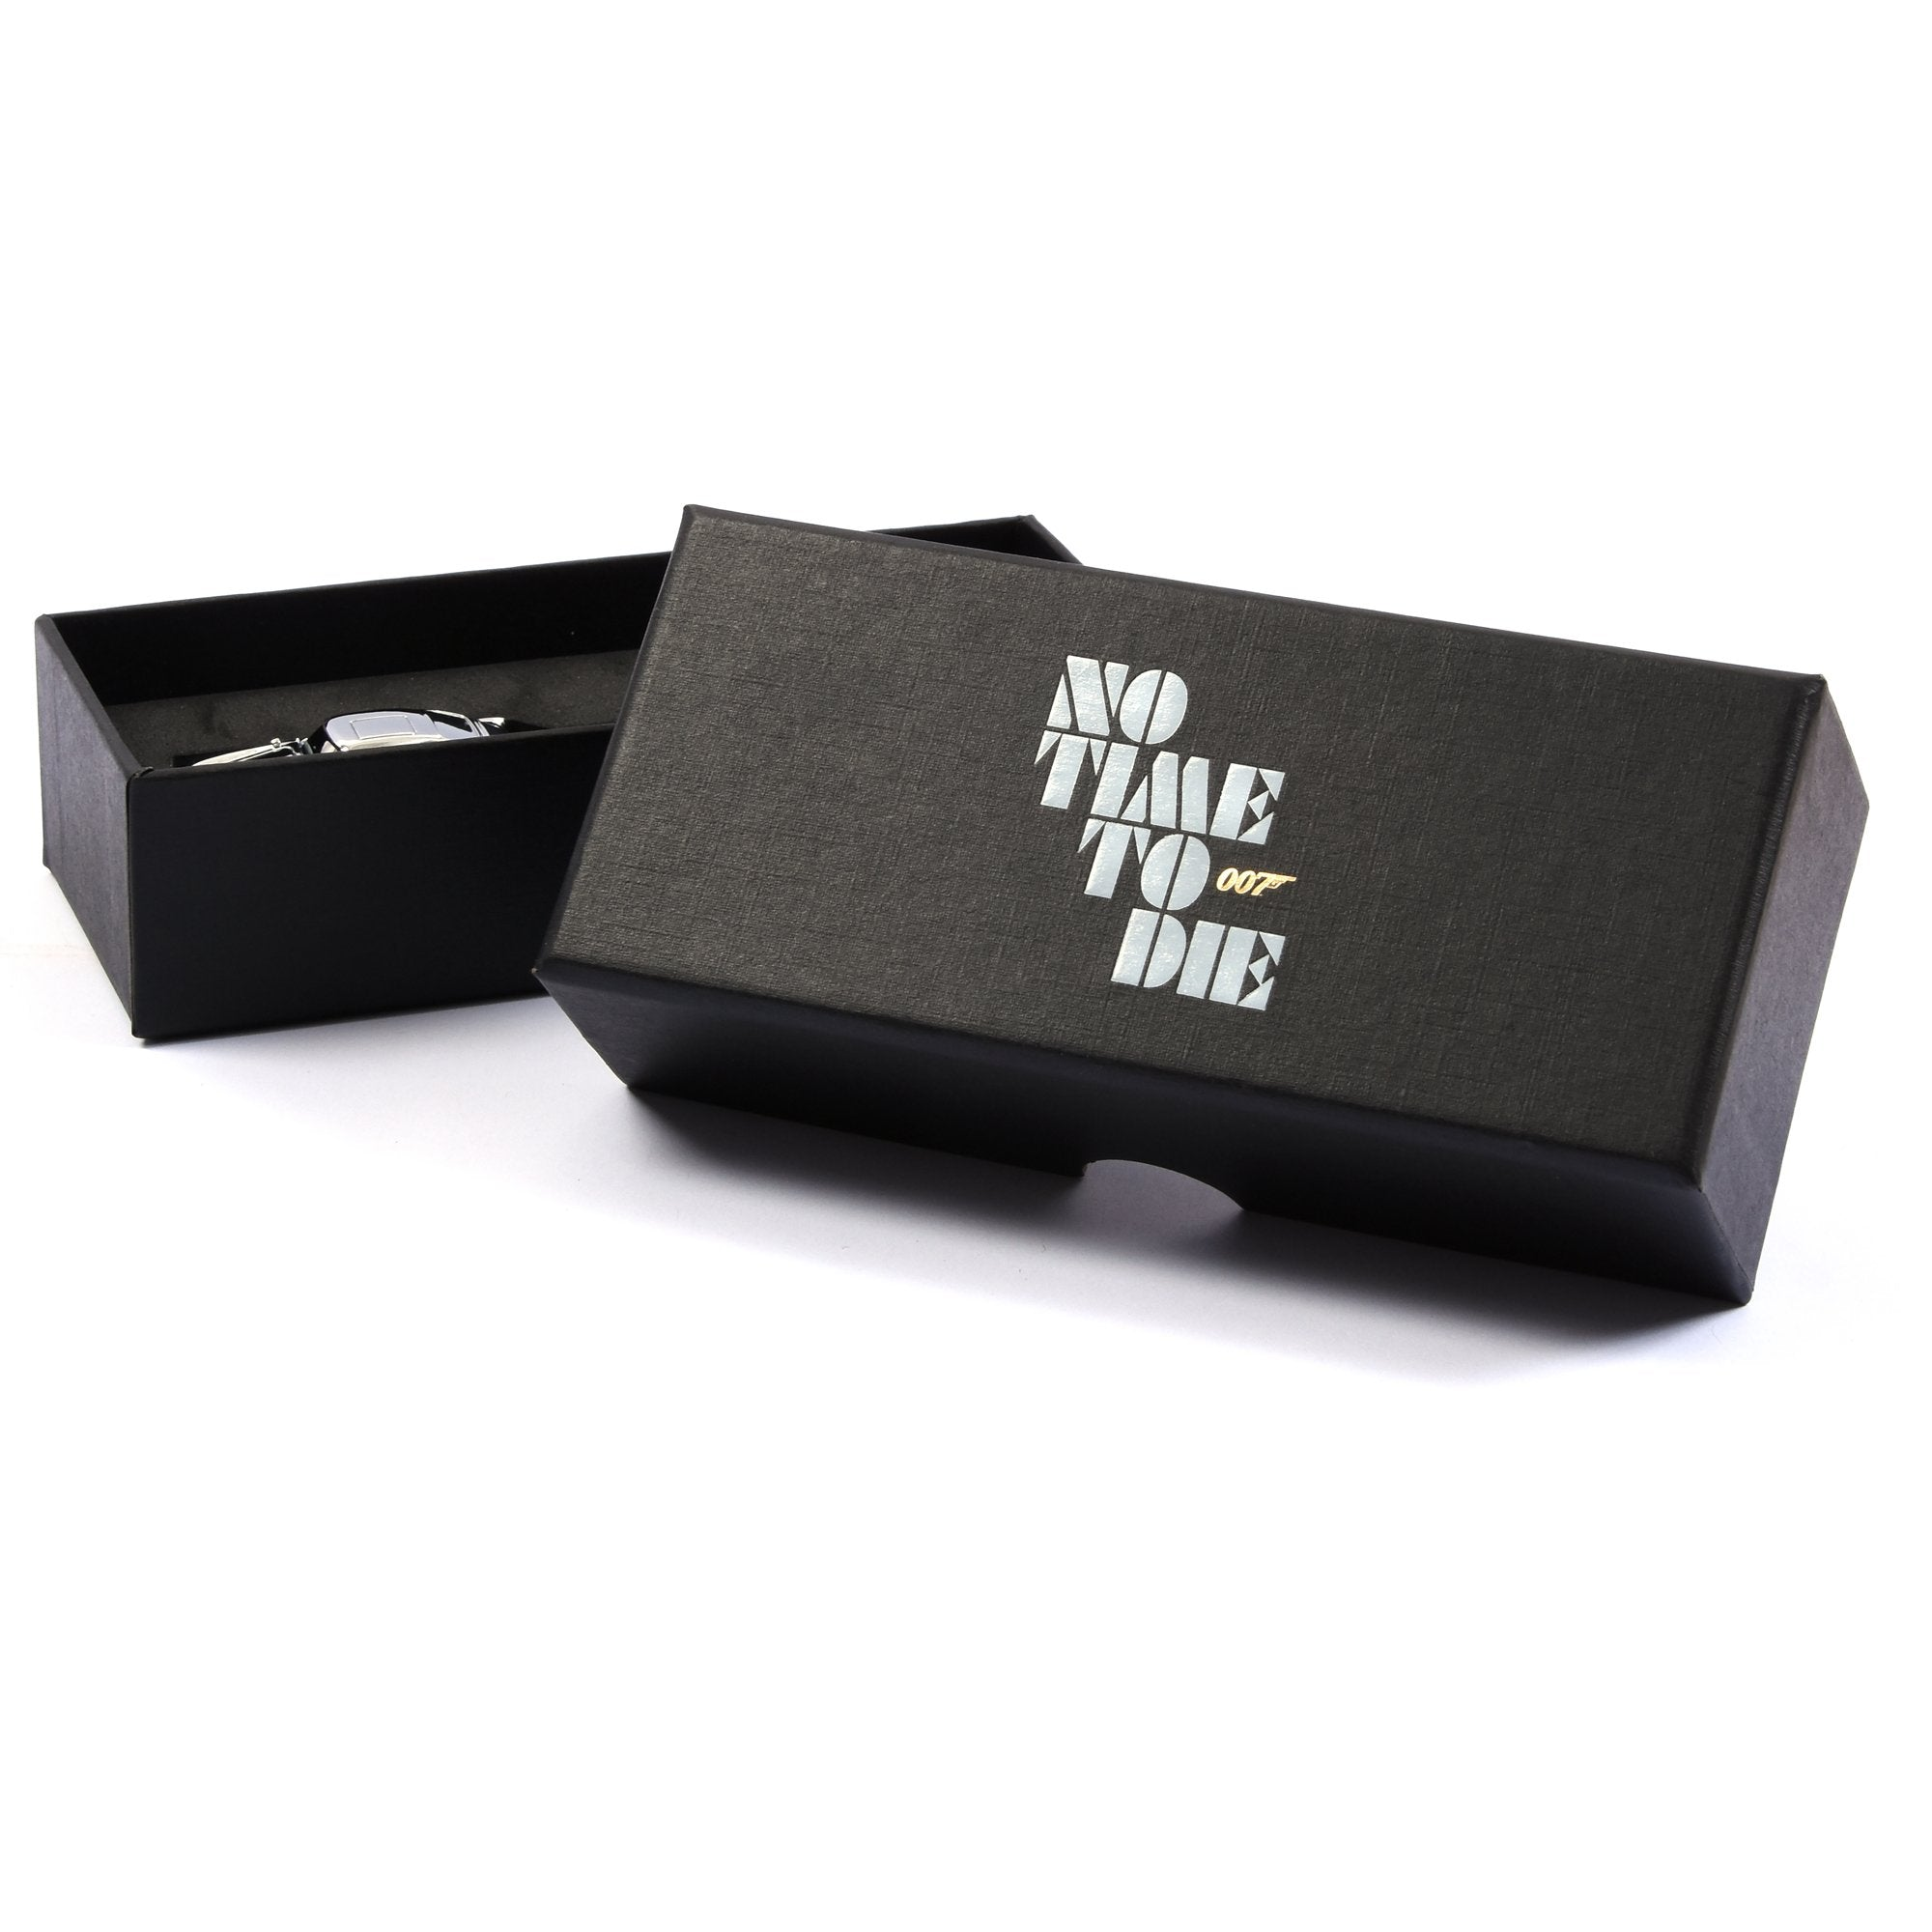 Aston Martin DB5 James Bond Keyring  - No Time To Die Edition